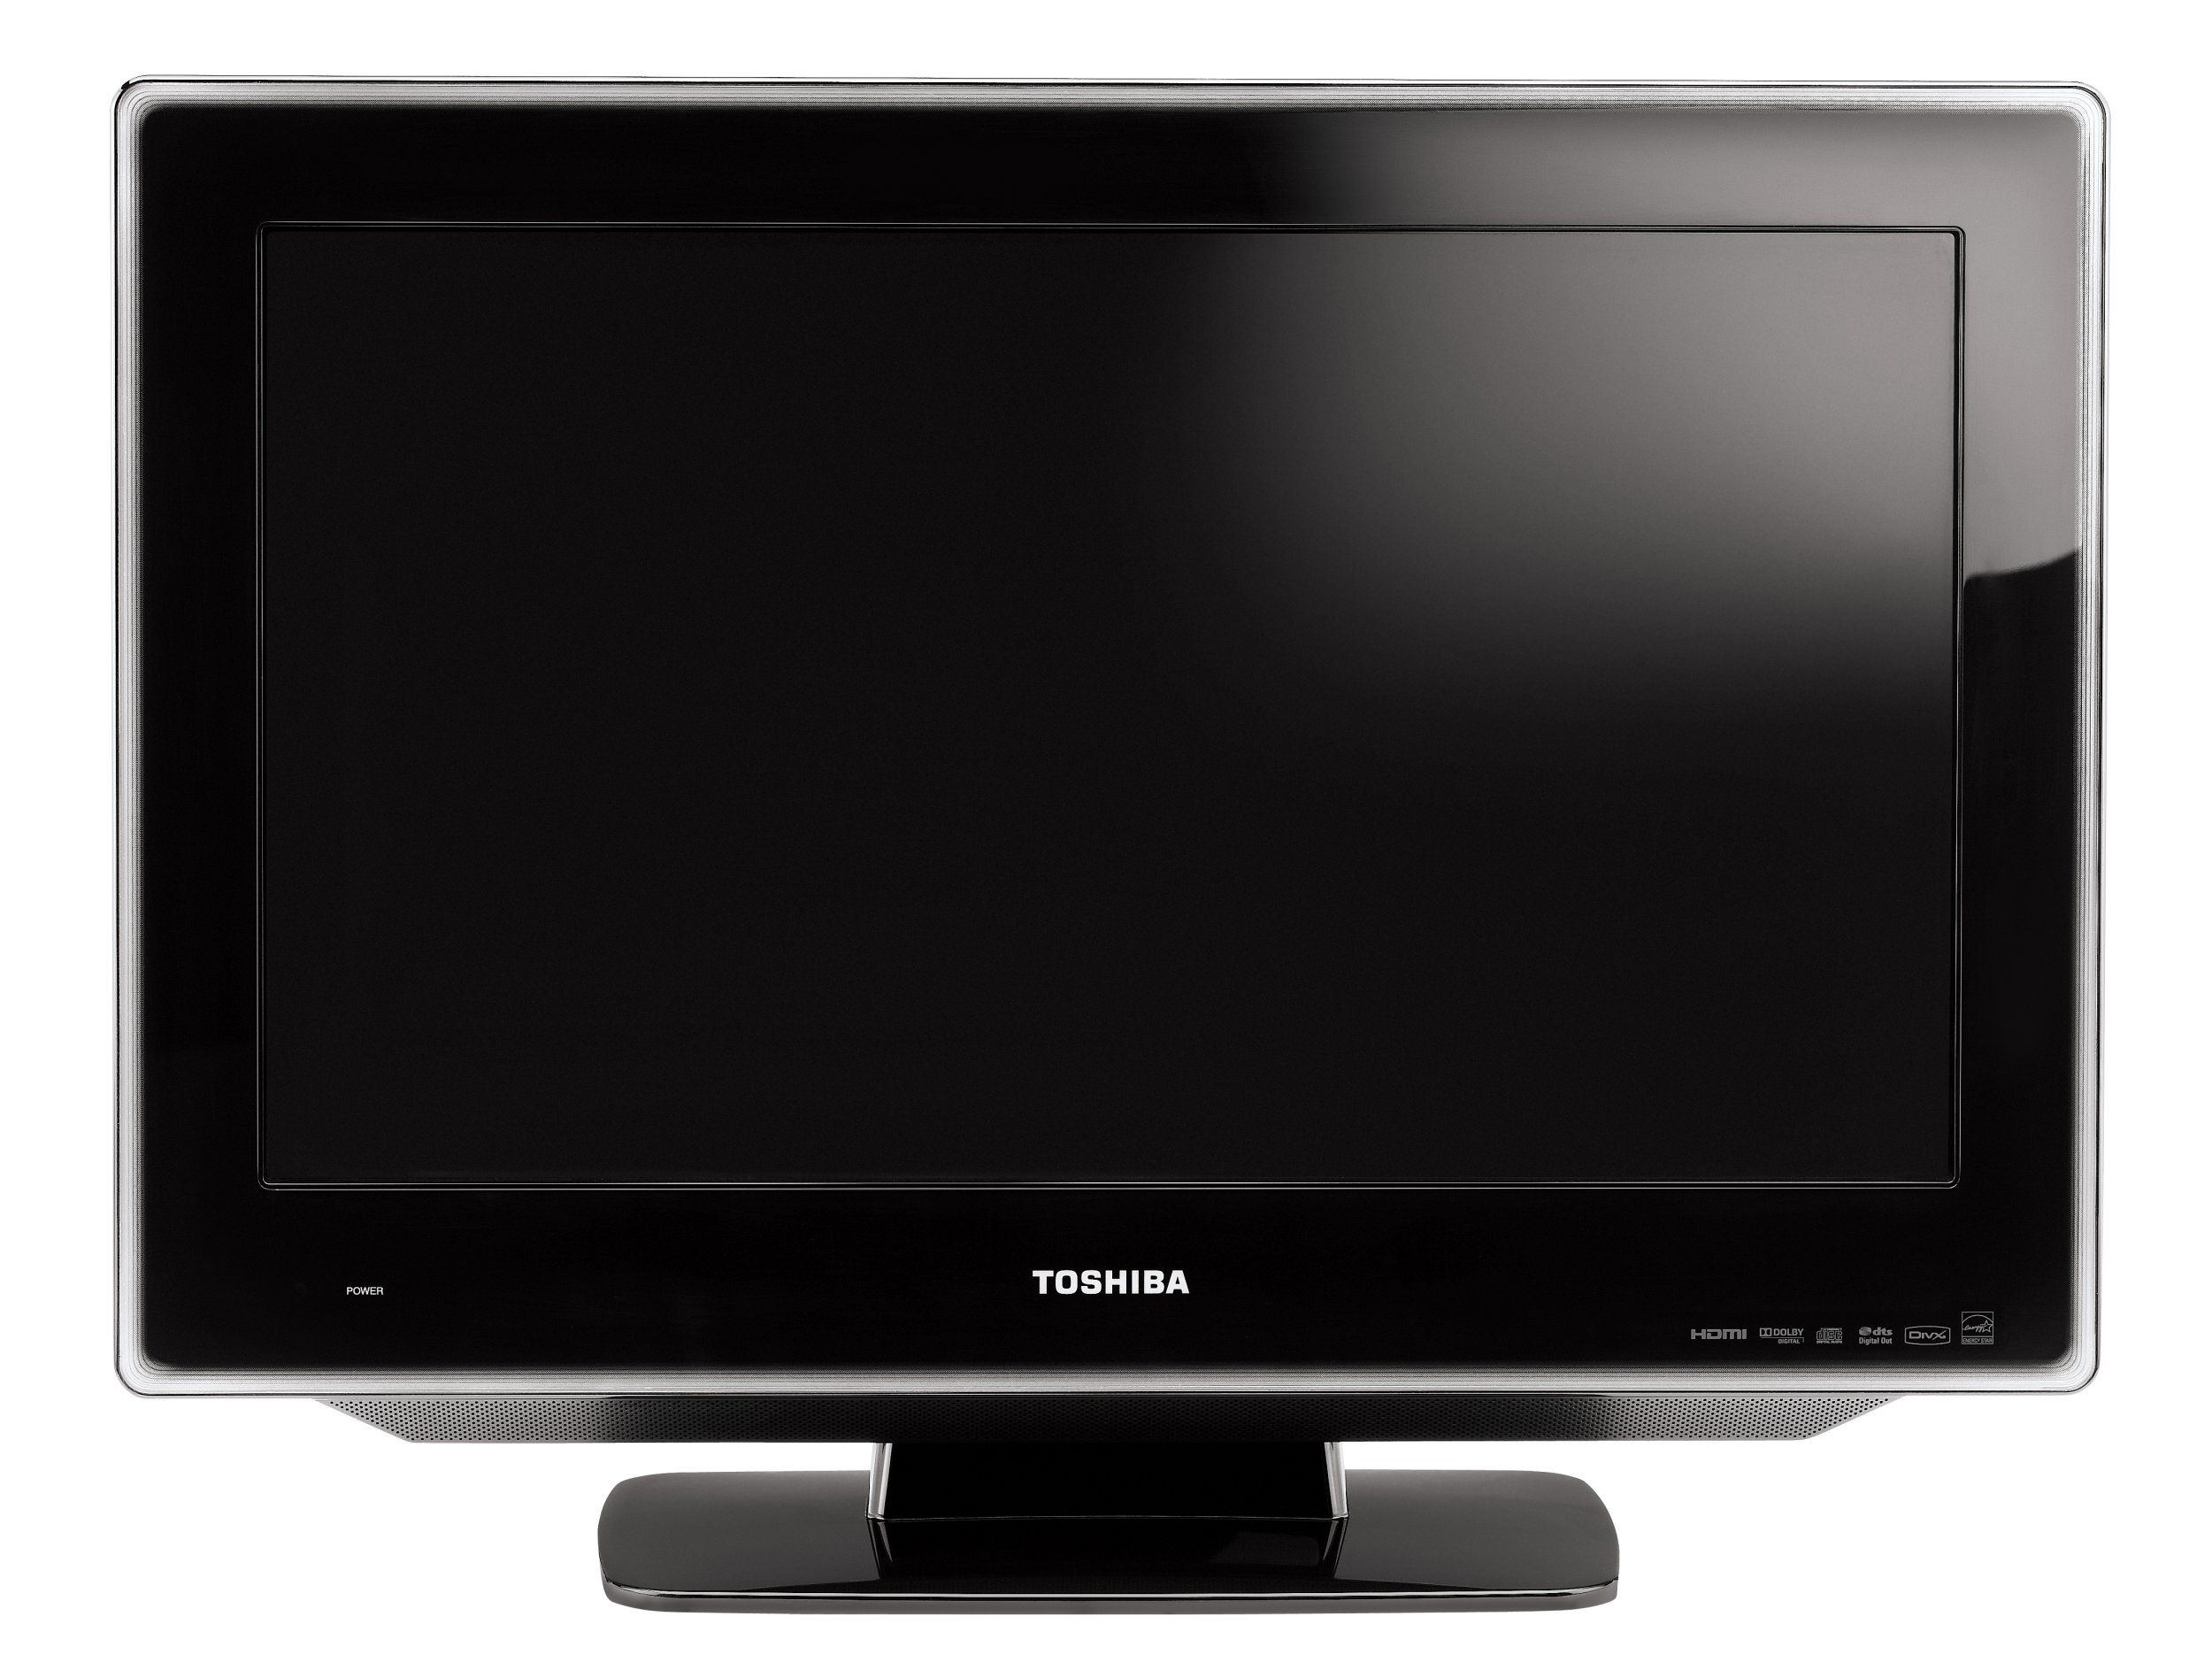 Toshiba 26lv610u 26 Inch 720p Lcd Tv With Built In Dvd Player Black Lcd Tv Toshiba Dvd Player